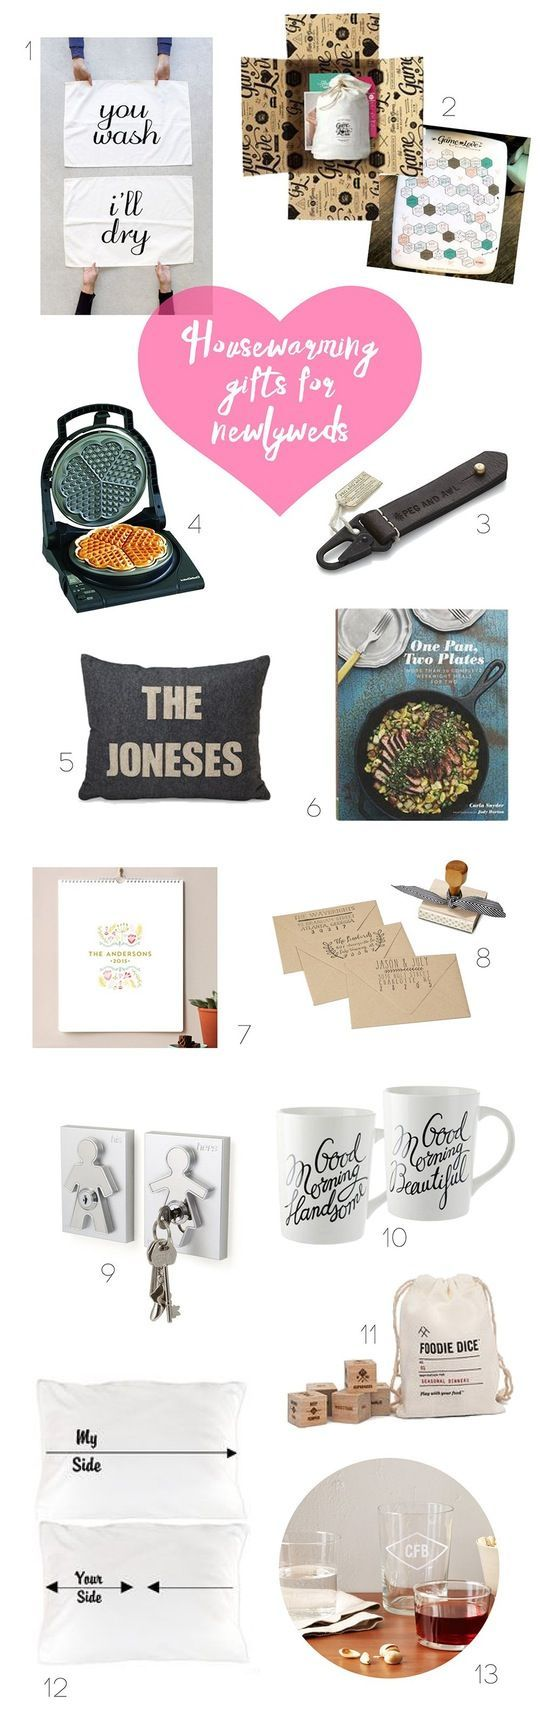 17 Best Ideas About Housewarming Gifts On Pinterest